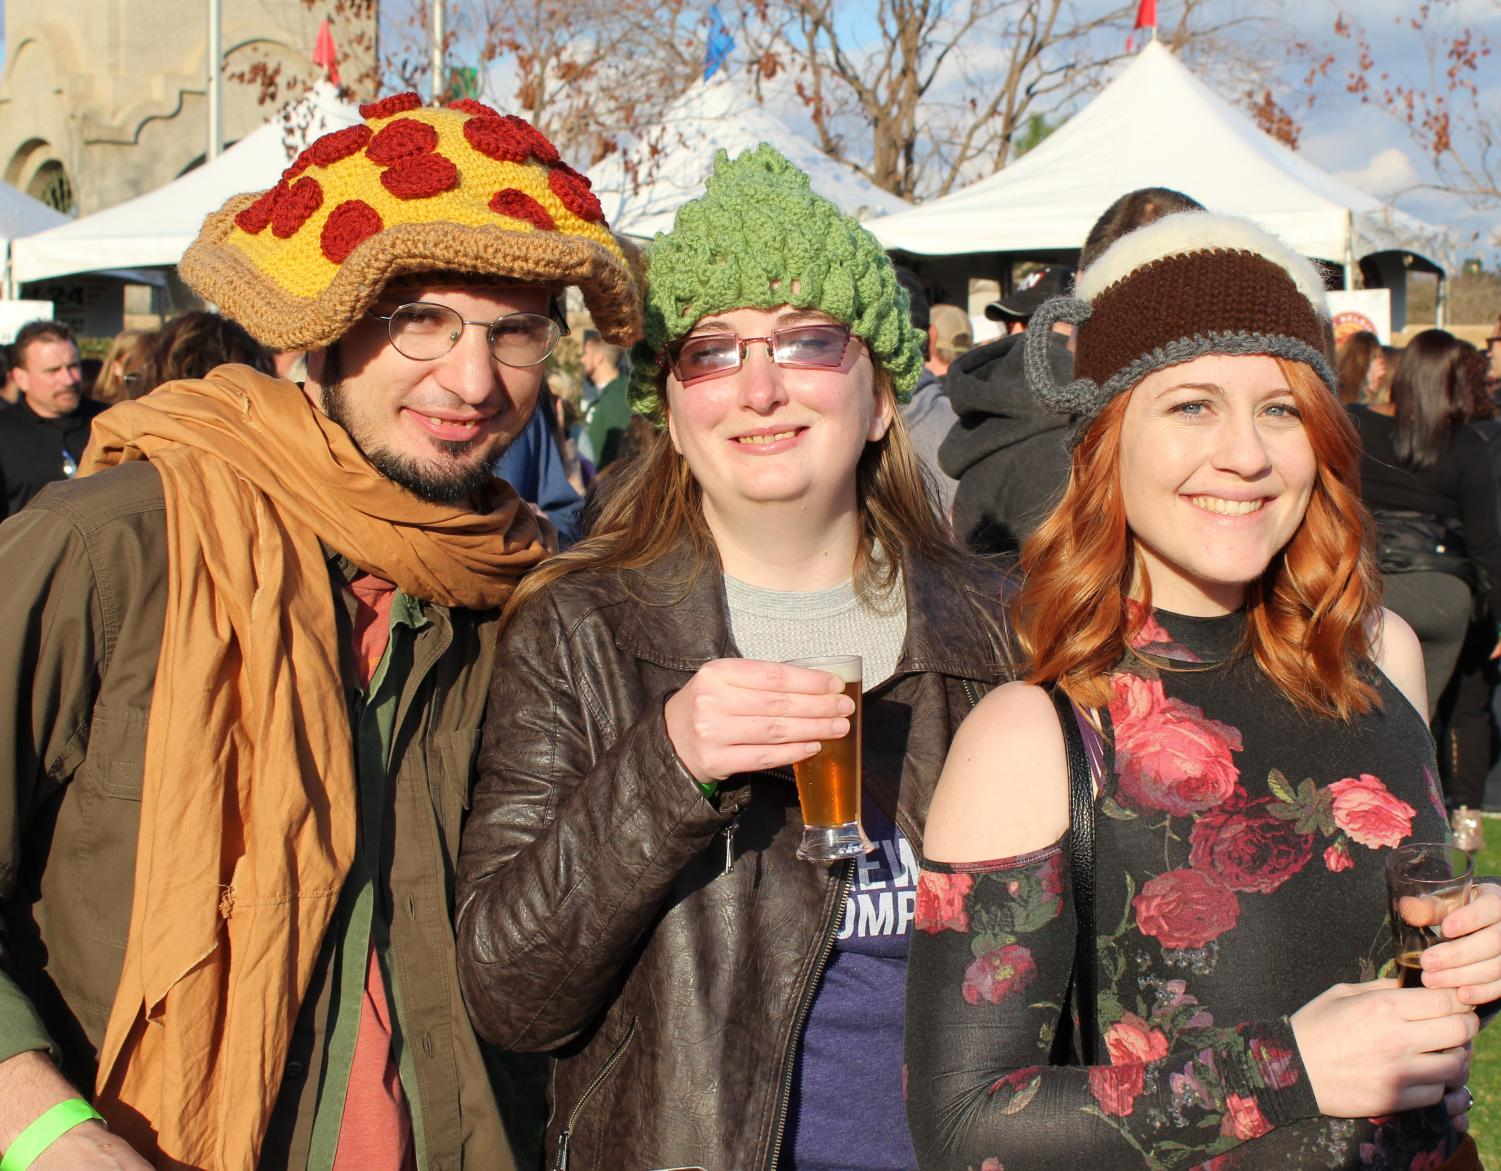 Thomas Powell, Denise Powell, and Shanon Sutton are in the spirit of Pizza and Beer Fest with their unique hats